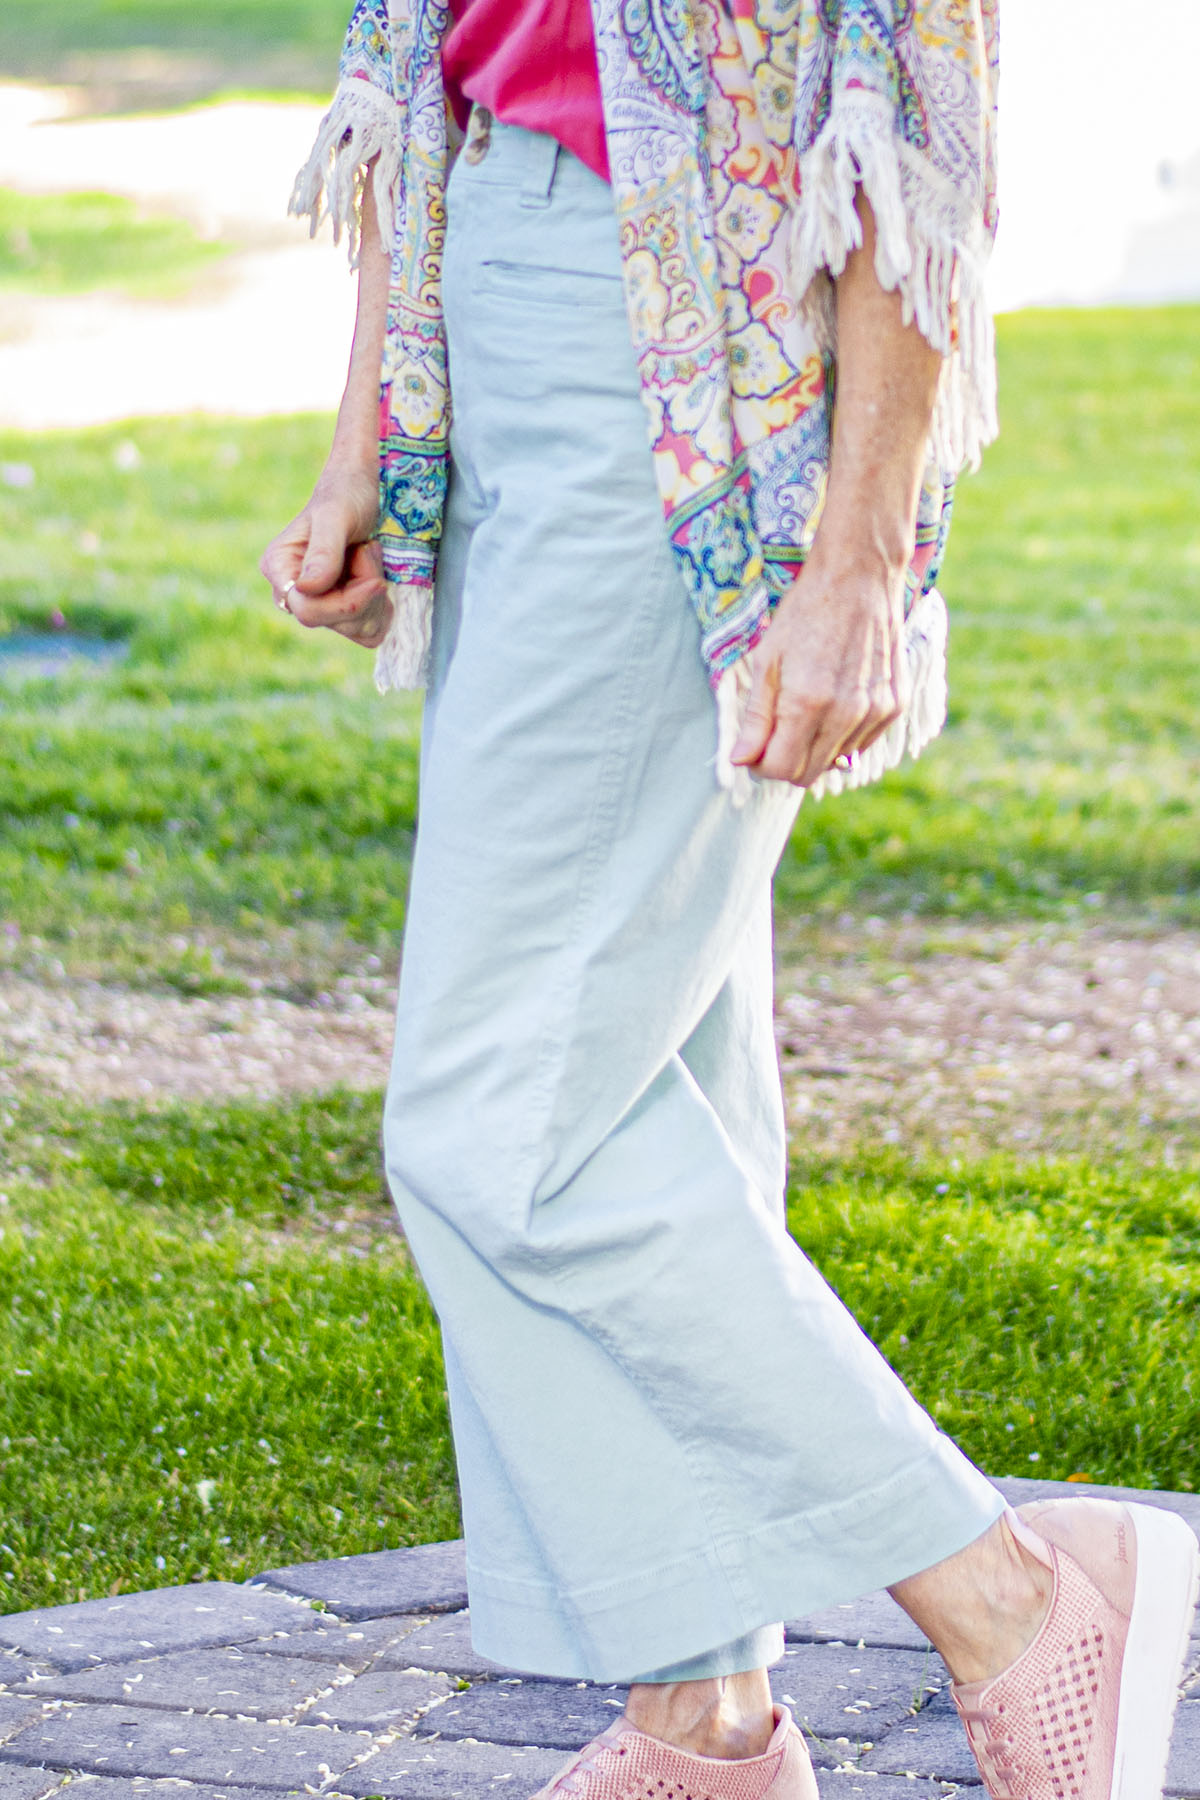 How to Wear Cropped Pants: Styled 5 Unique Ways